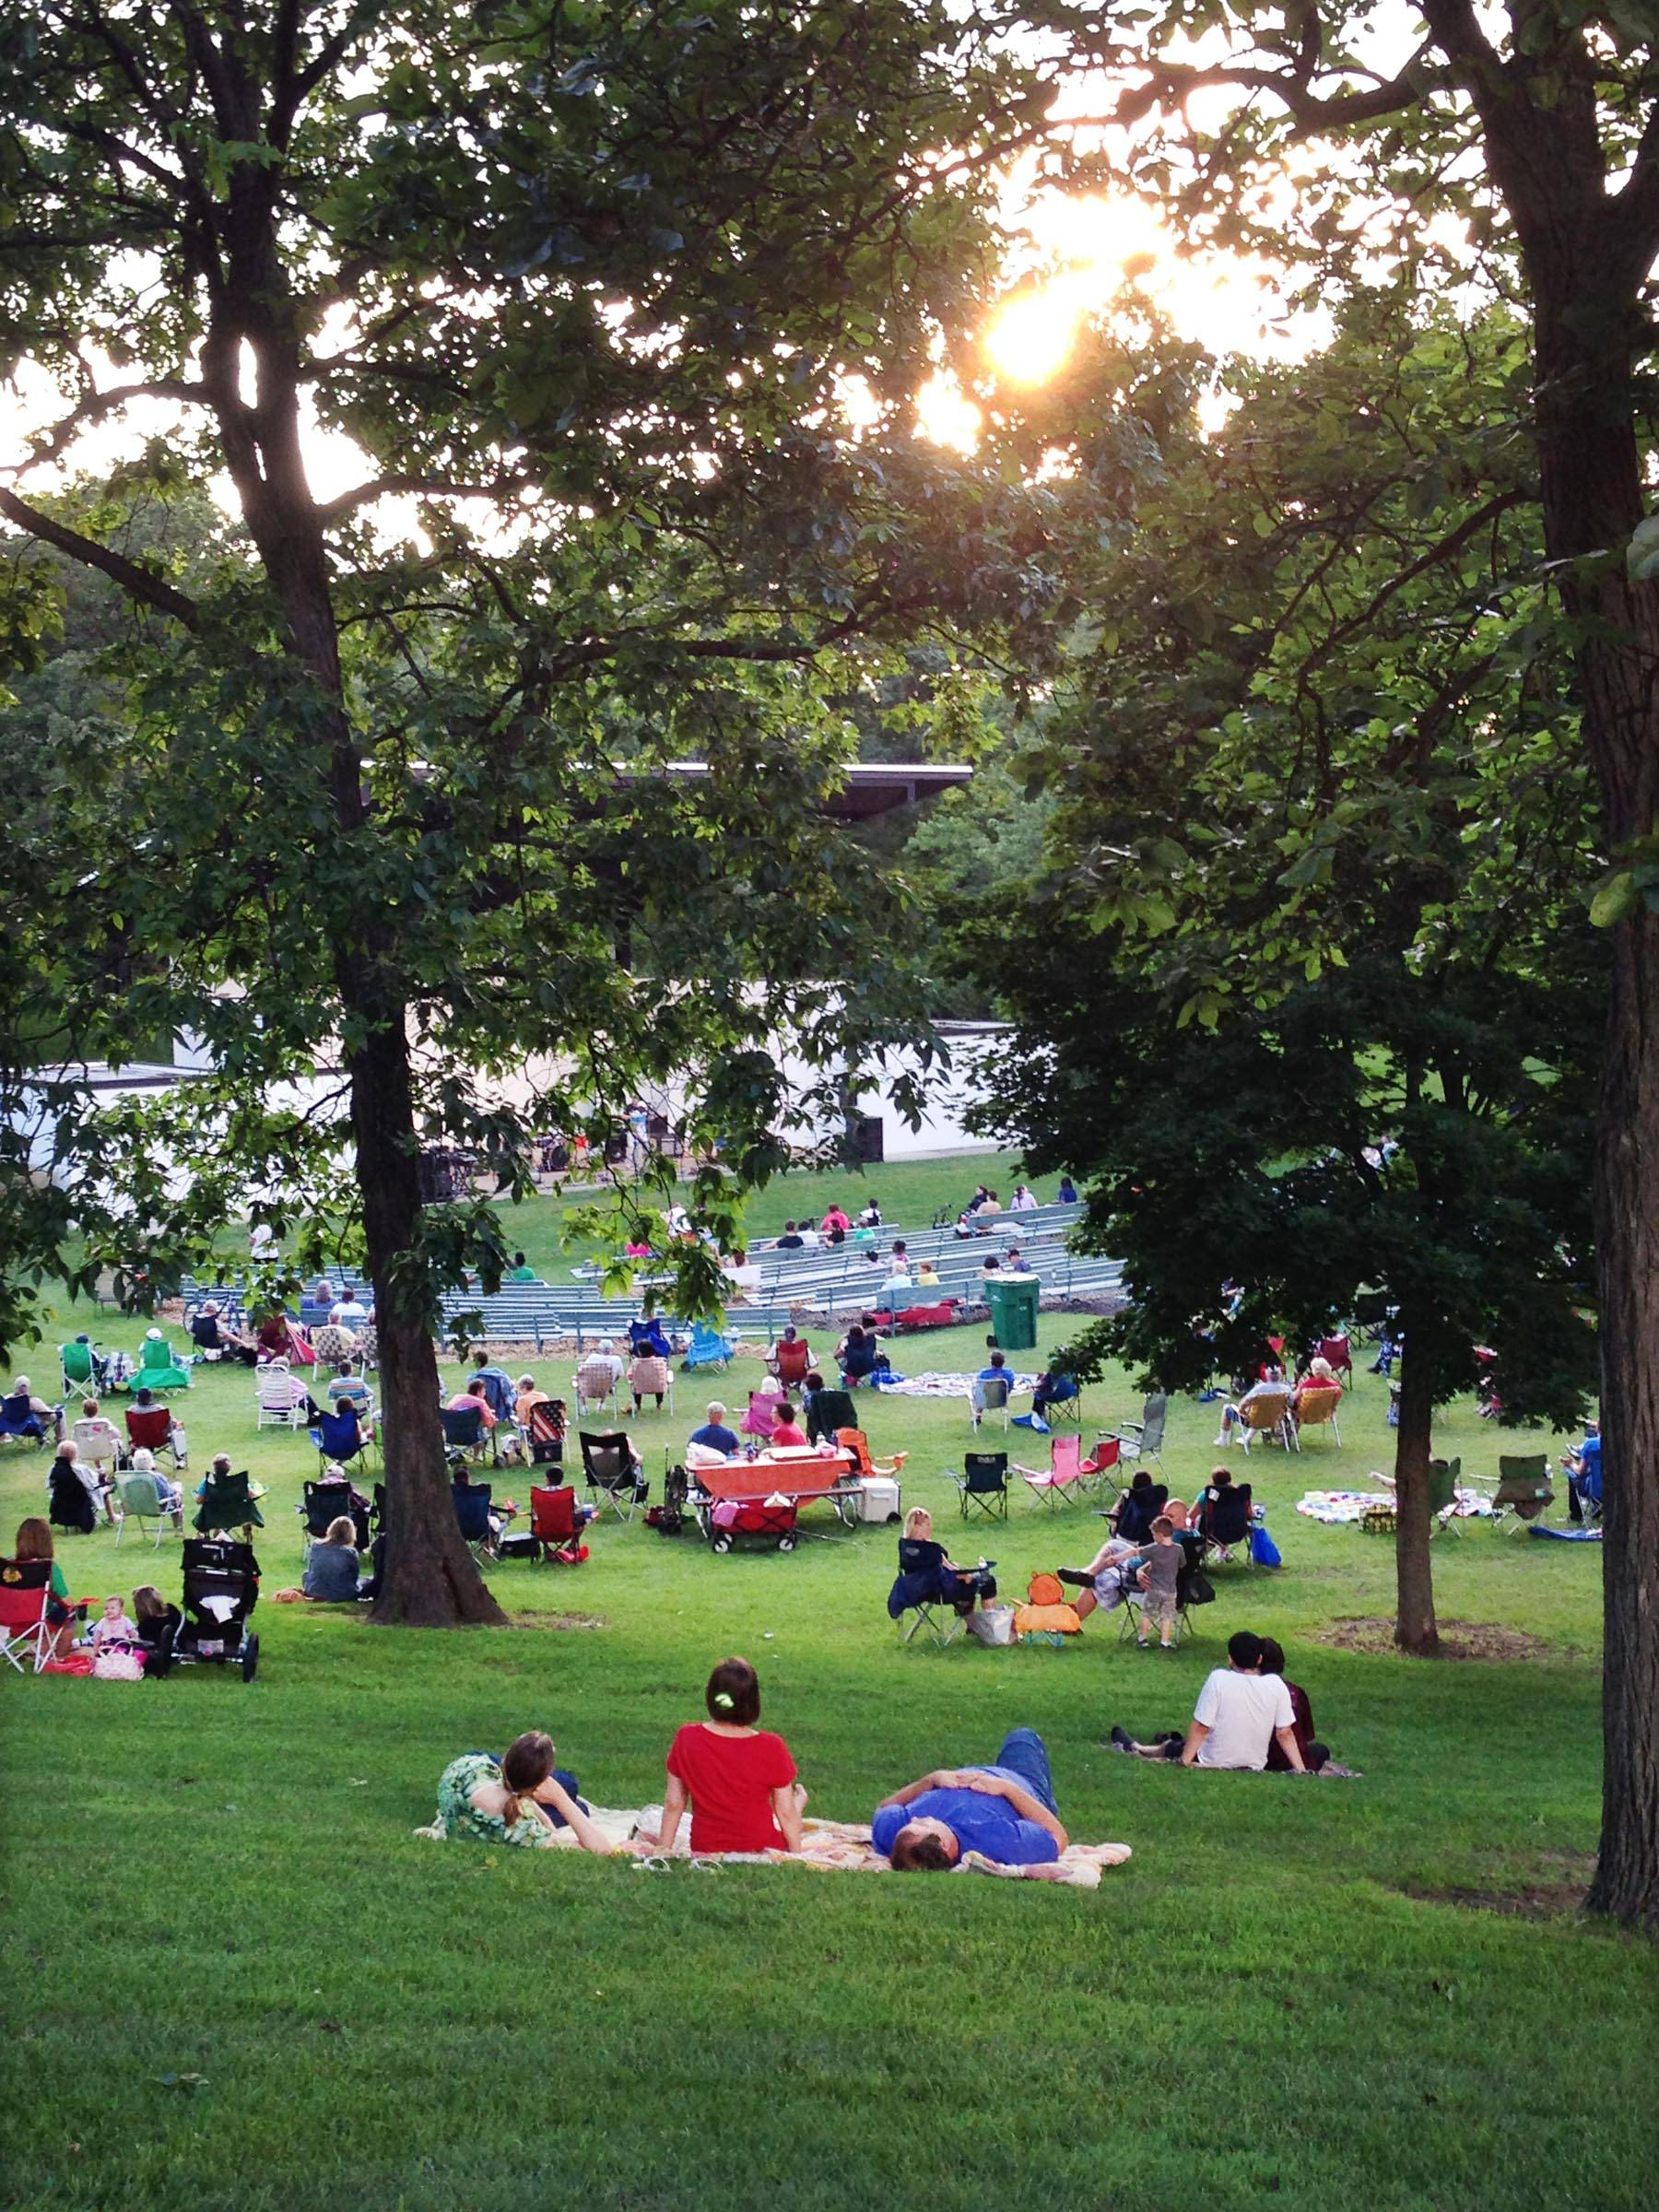 Several hundred people spread out on the grass at Wing Park Tuesday night for a concert by the R Gang band. The Chicago-based quintet played hits of the 1970s. The performance was part of the Elgin Concerts in the Park program.